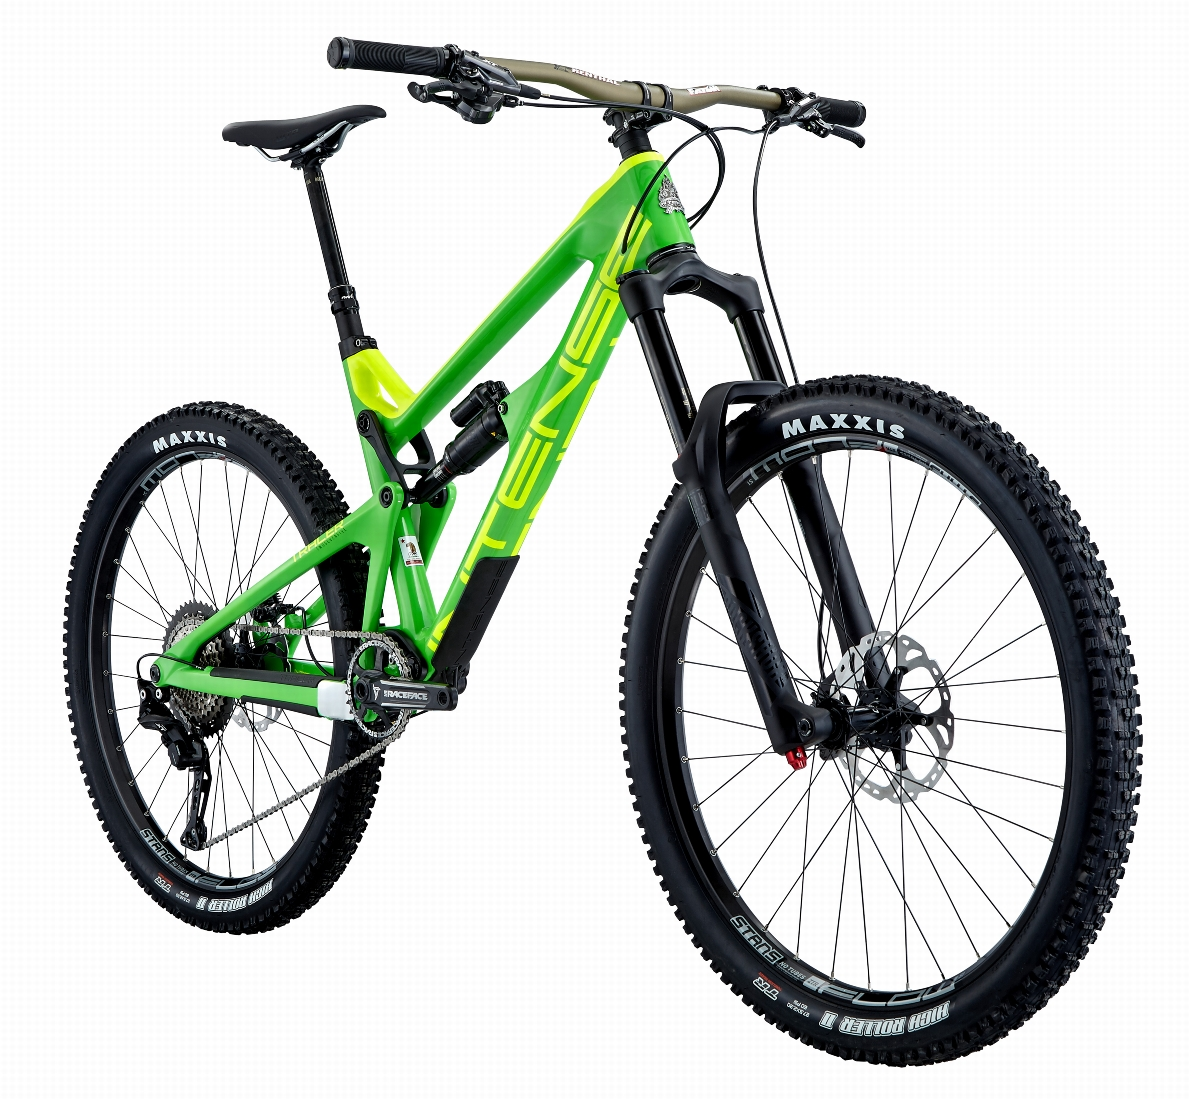 Expert build can be built up onto the green or black frames